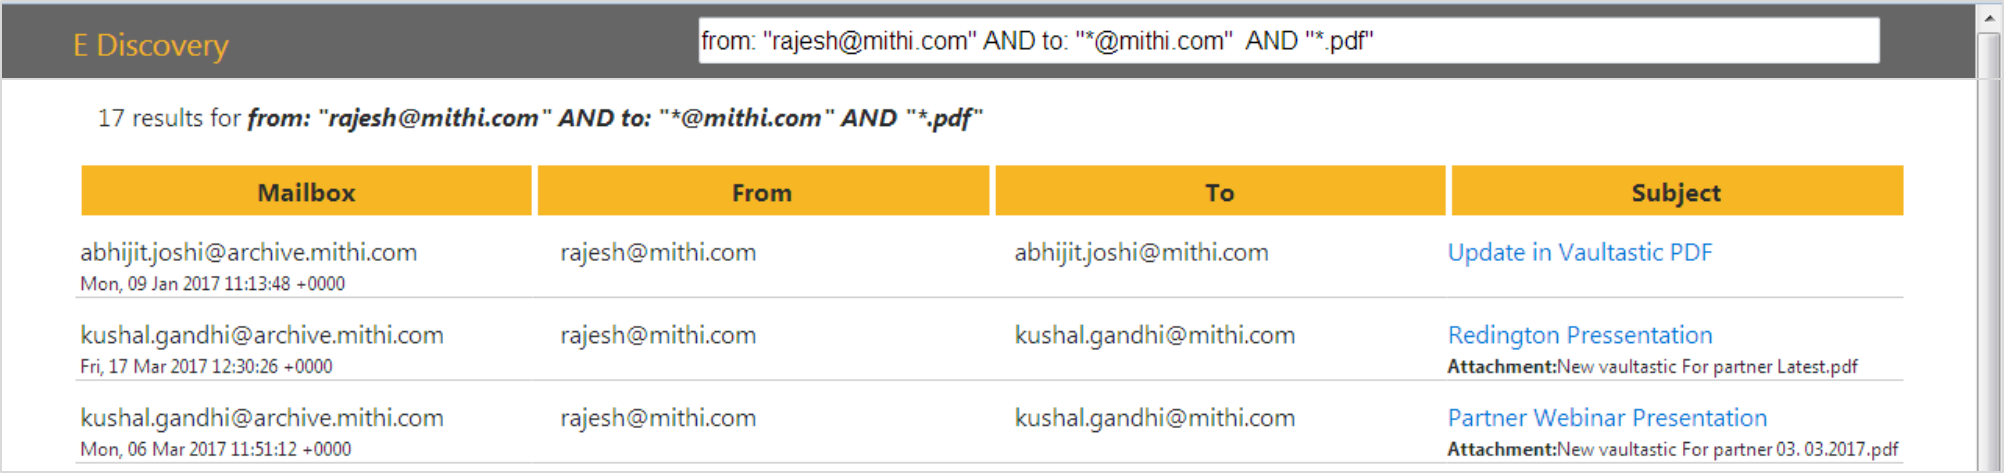 ediscovery: Search if Rajesh has sent any mail to anybody in Mithi with a PDF attachment?